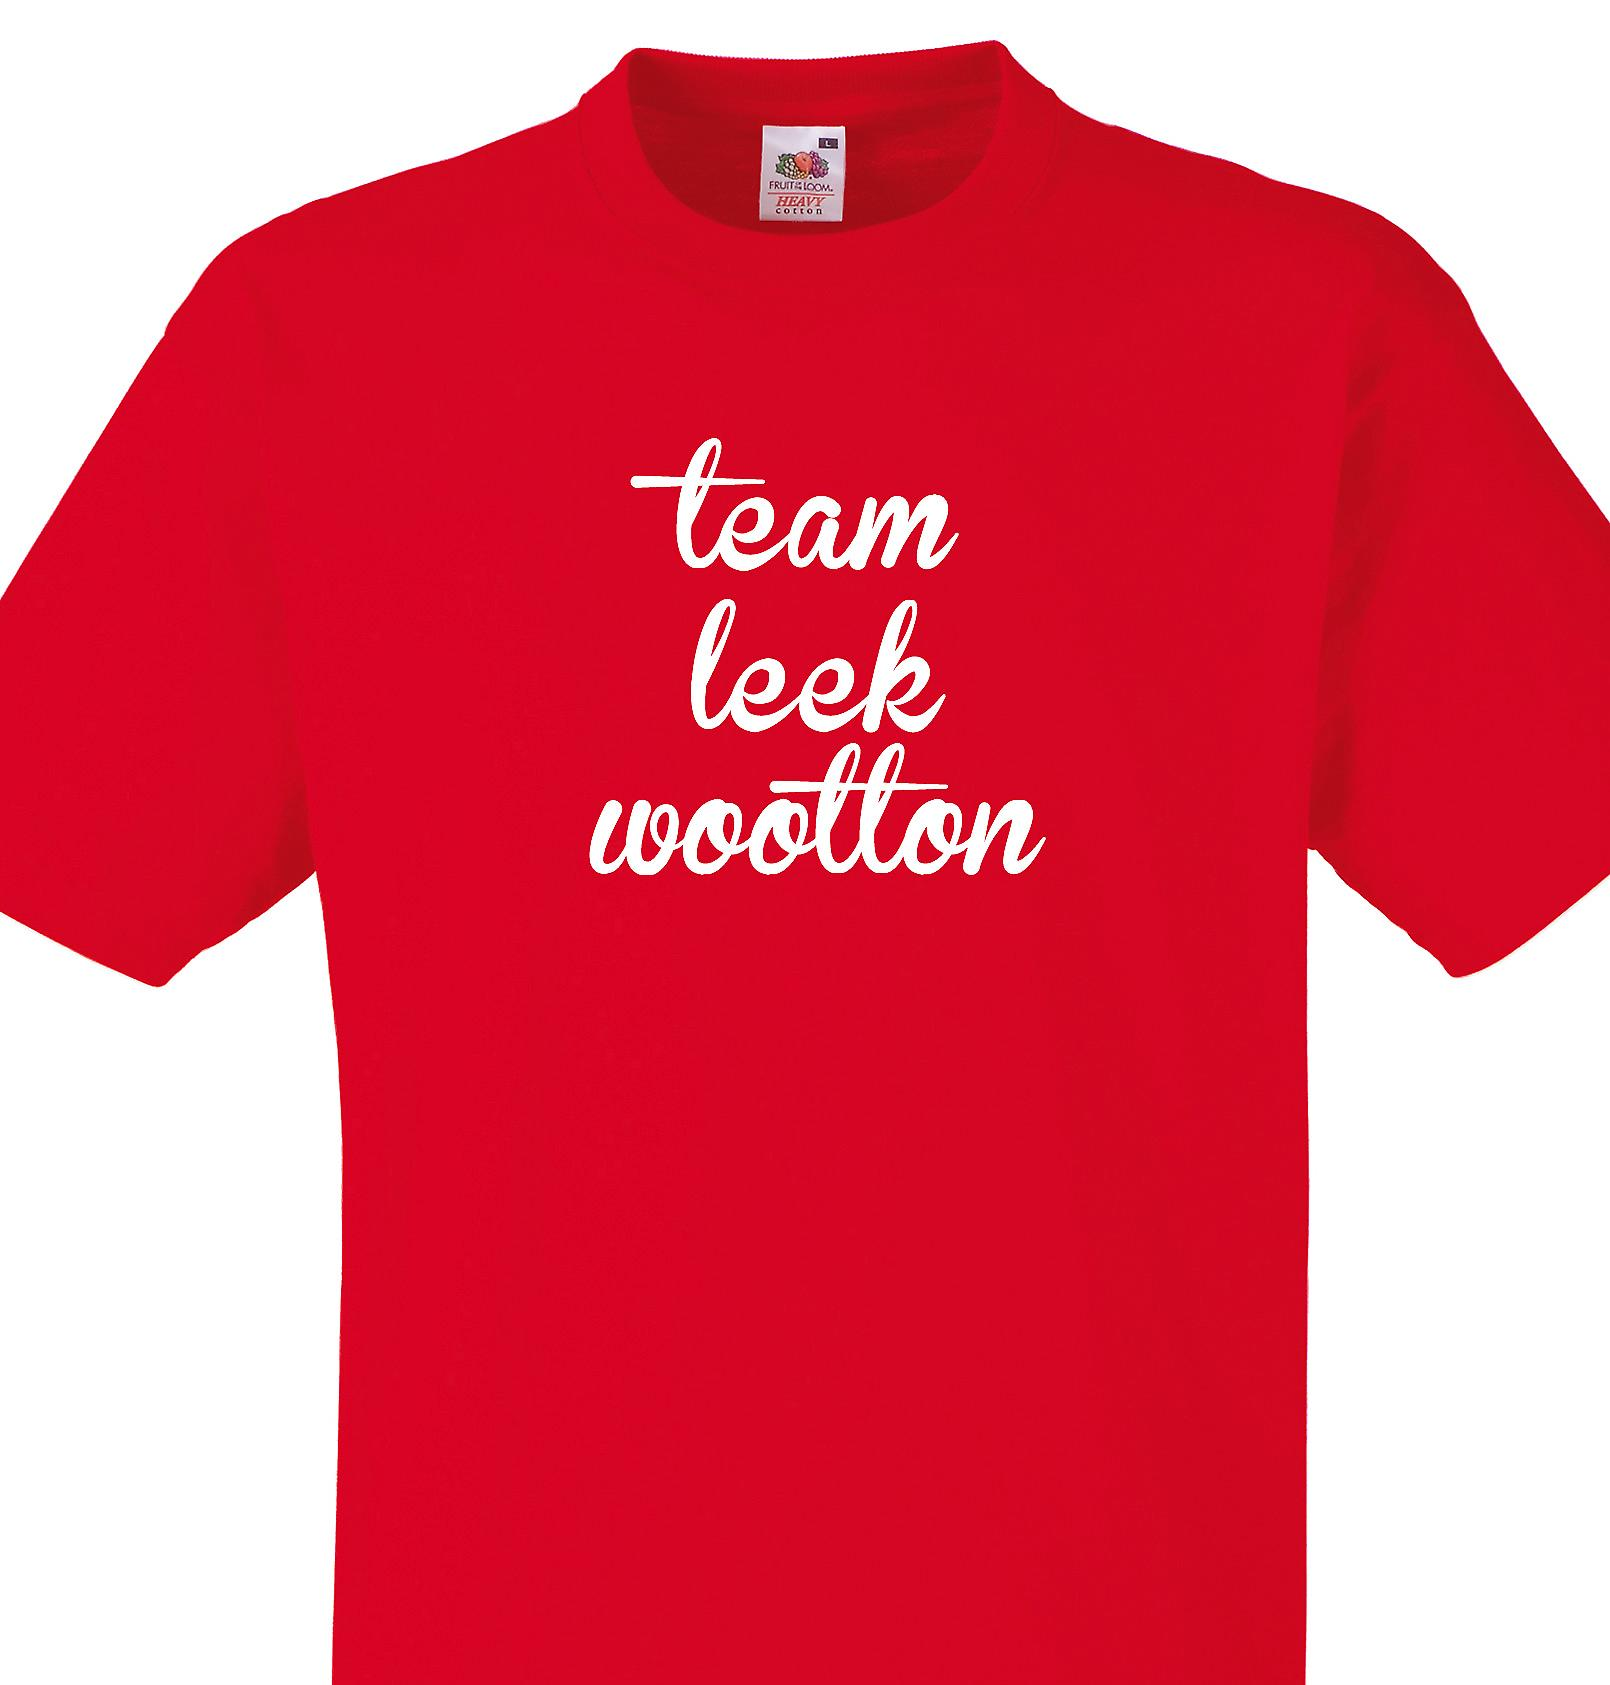 Team Leek wootton Red T shirt